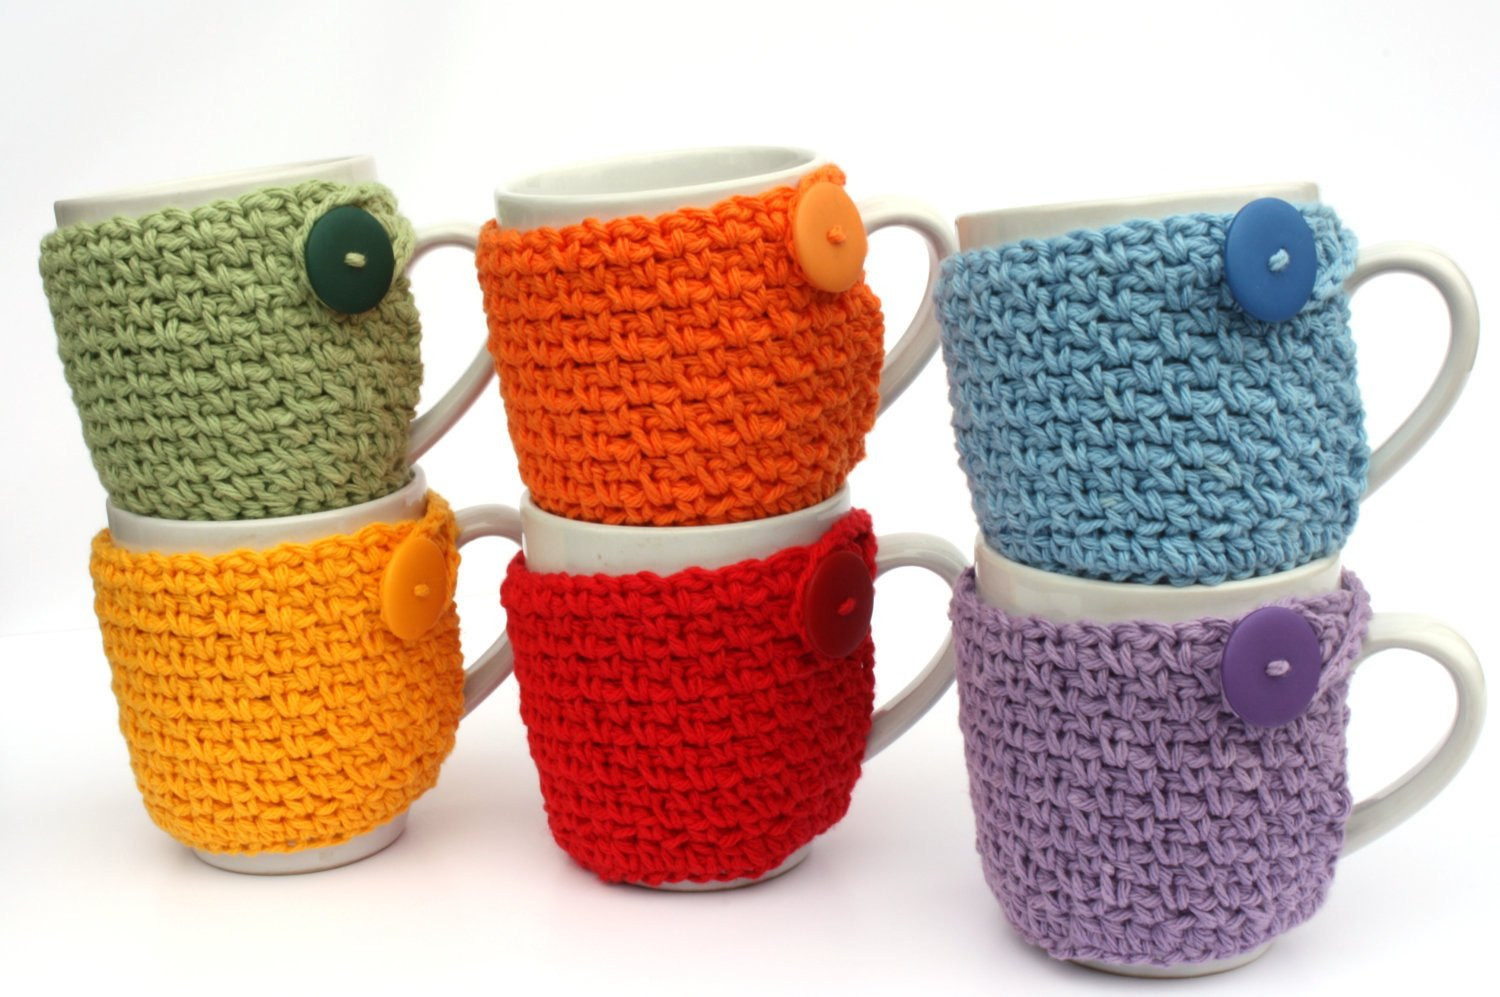 Crochet Coffee Cup Cozy Lovely Coffee Cup Cozy Crochet Cup Sleeve You Pick the by Sweetbriers Of Crochet Coffee Cup Cozy Awesome Textured Coffee Mug Cozy Crochet Pattern